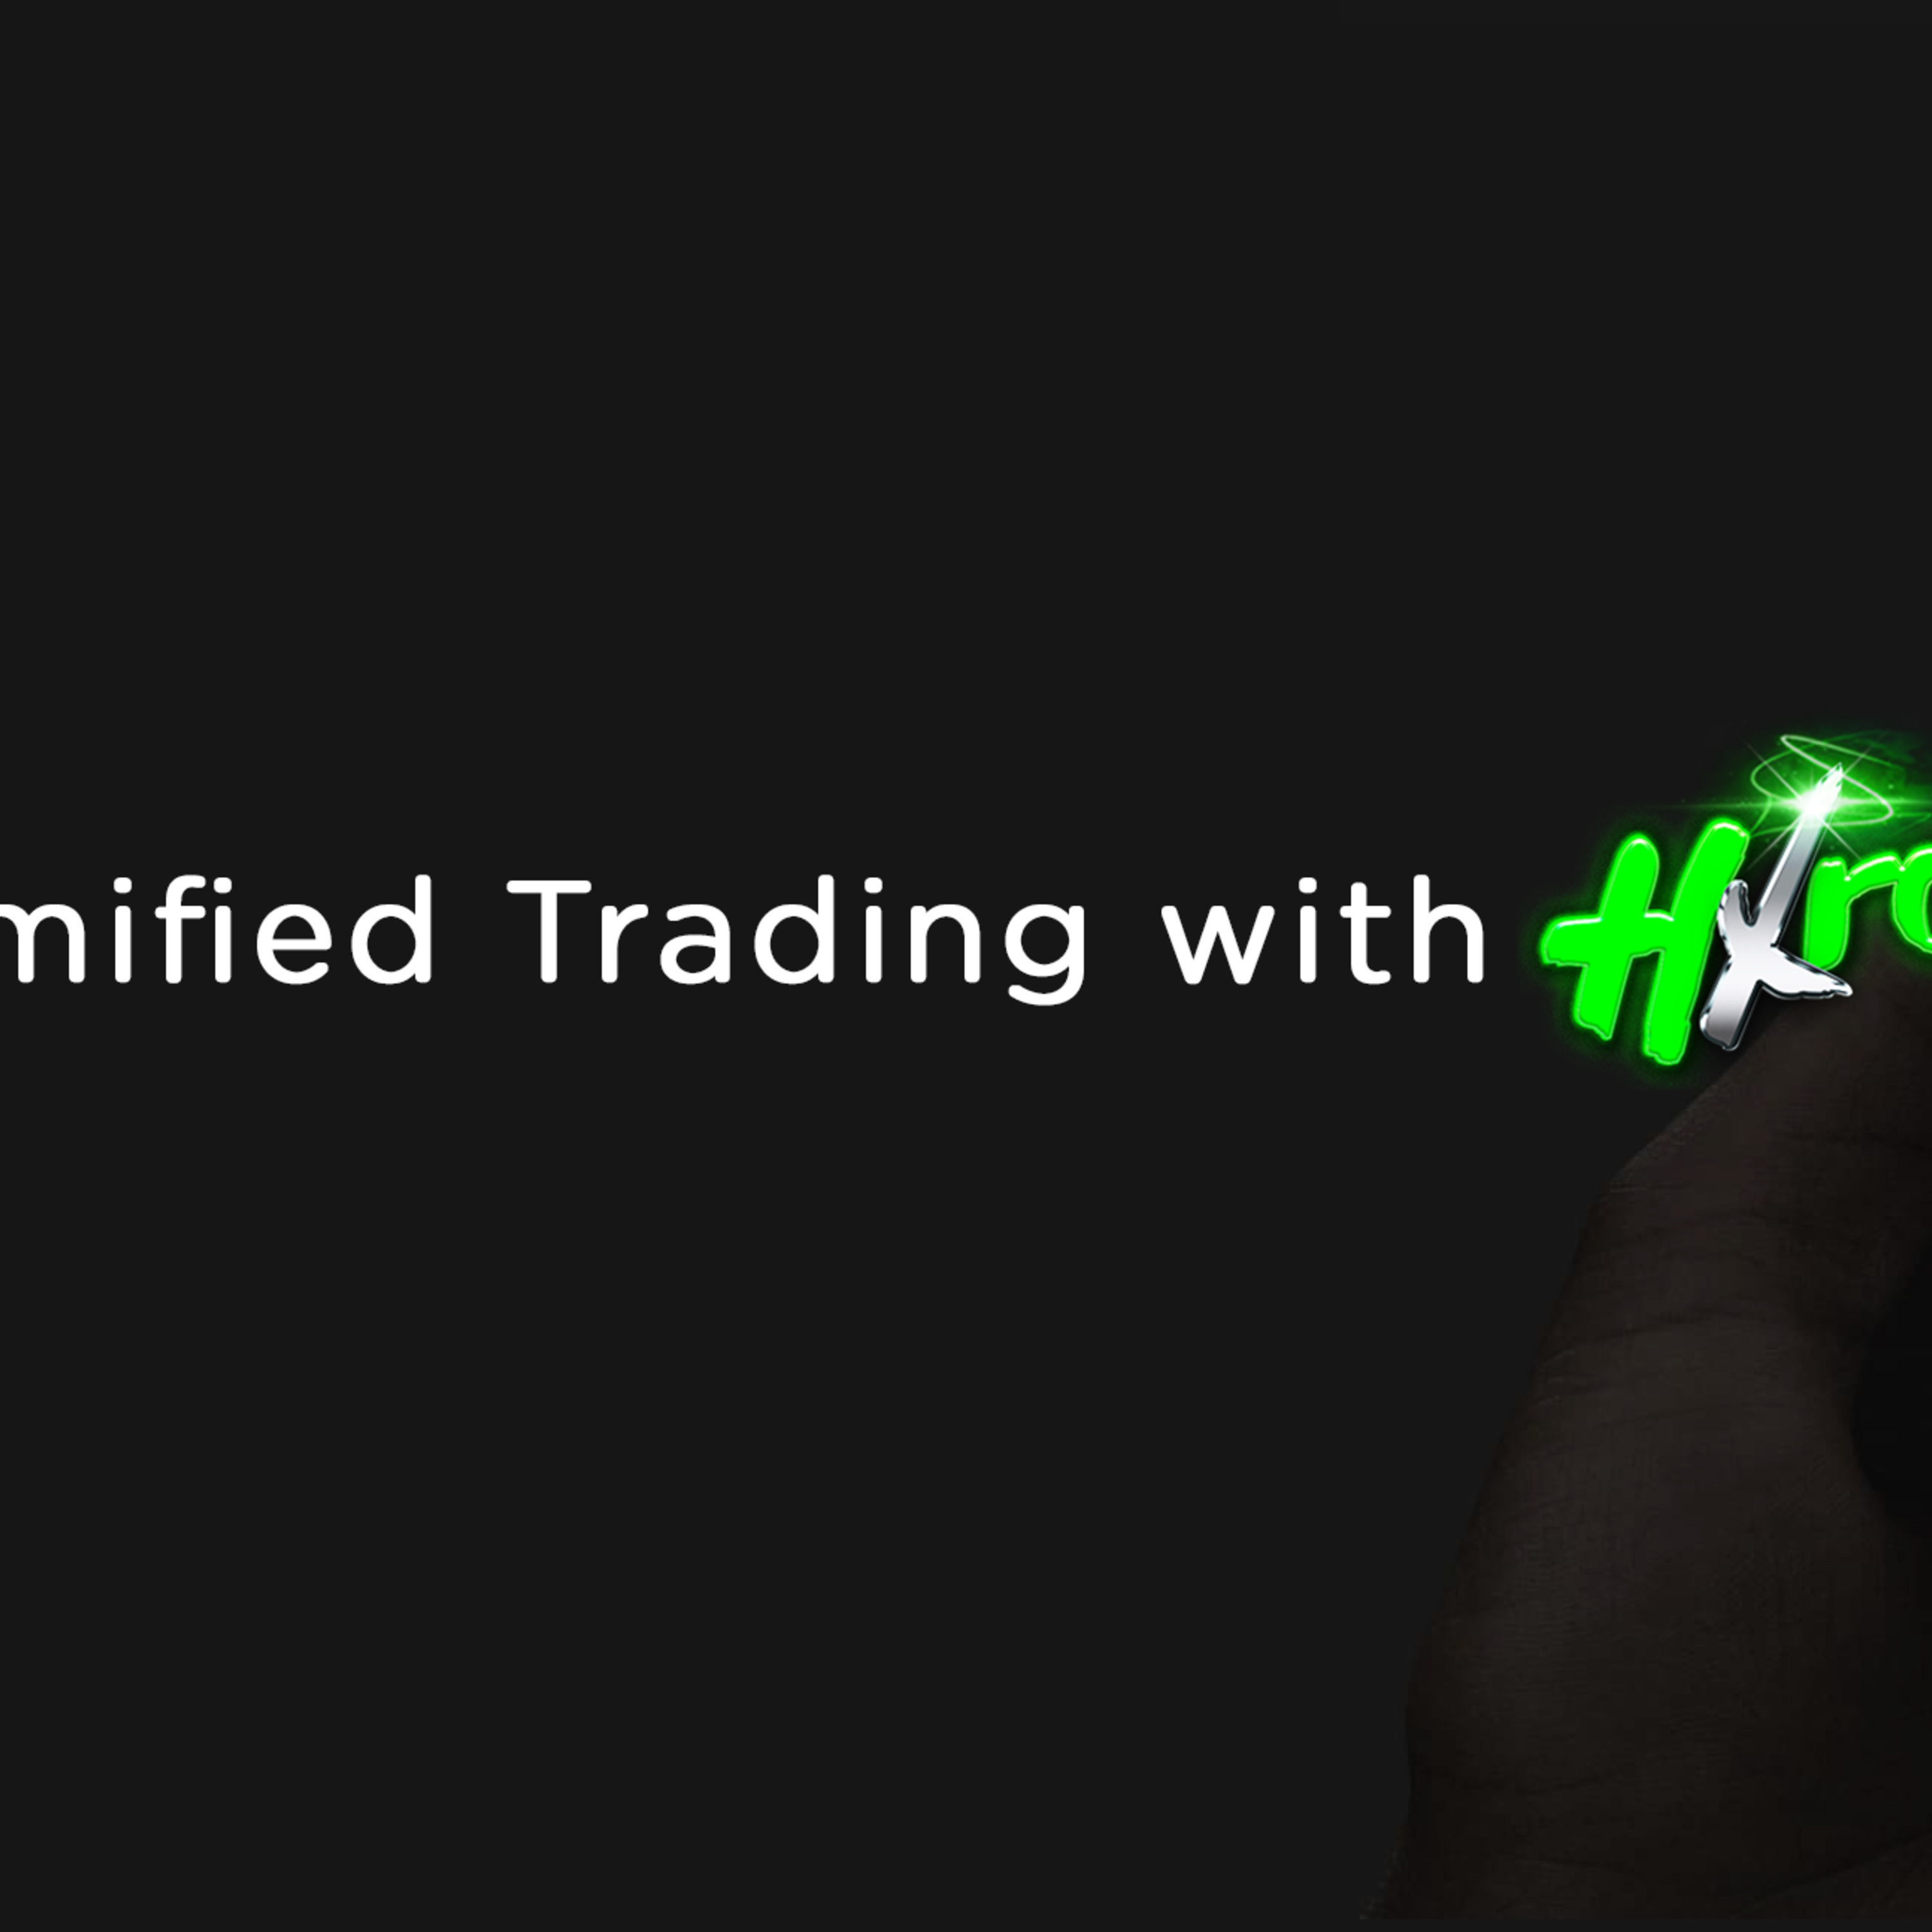 How Hxro Gamified Crypto Trading